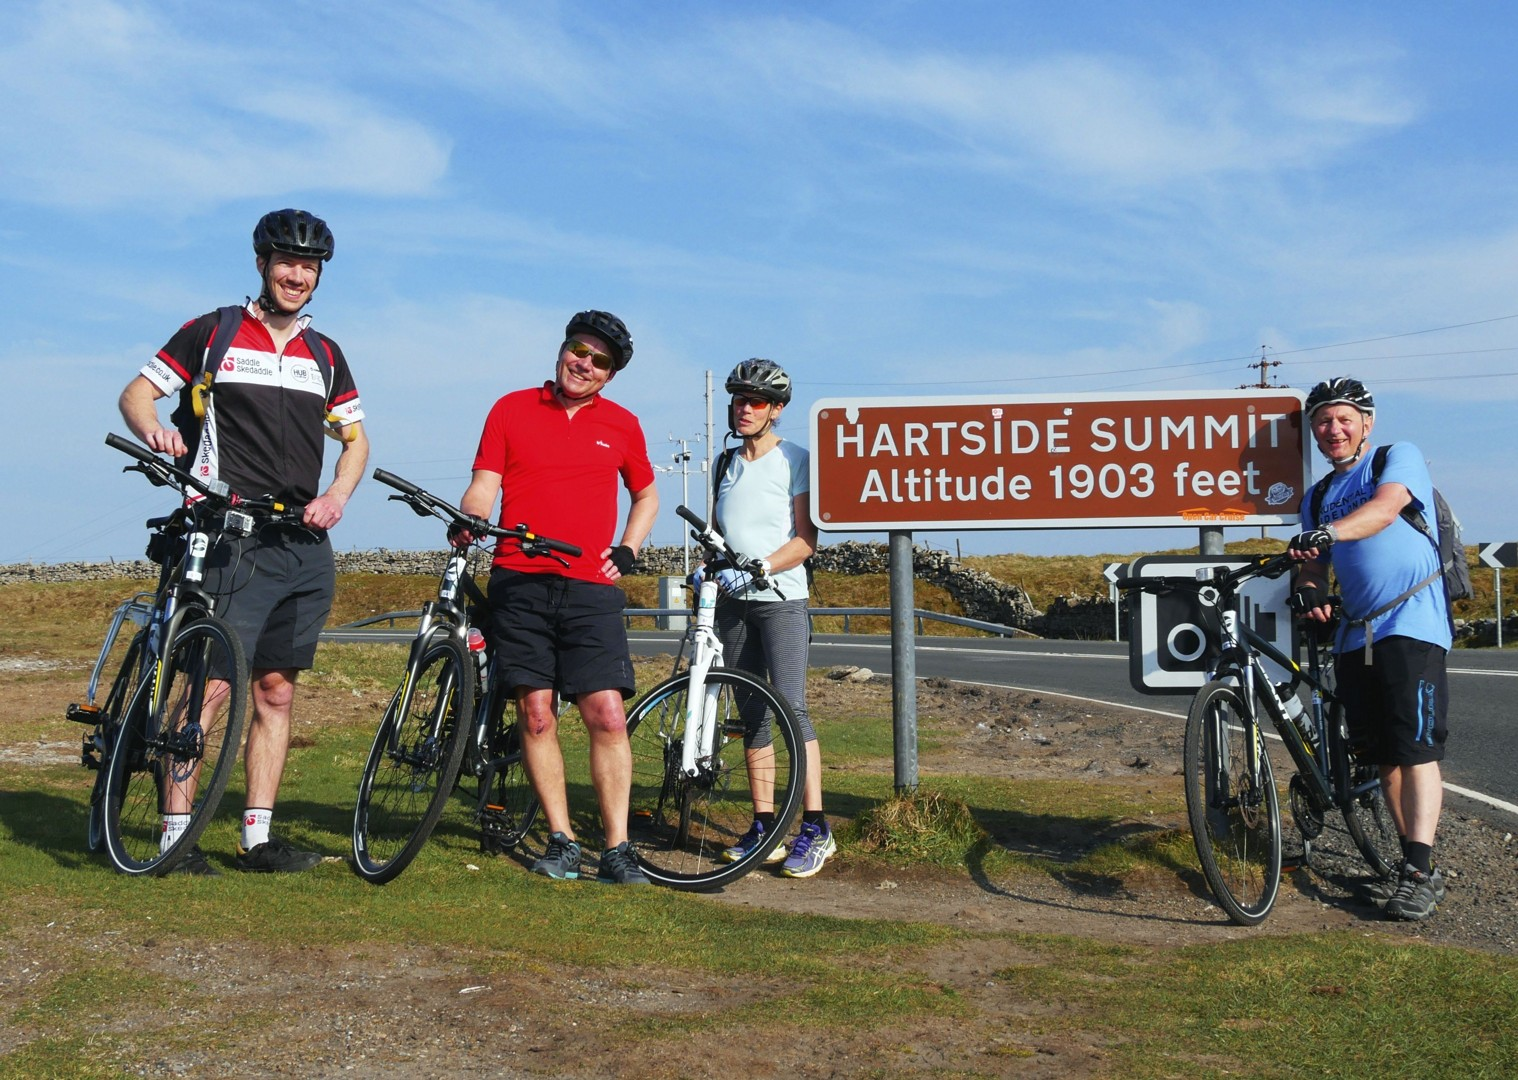 c2c-summit-cumbria-heartside-cyclists-bikes.jpg - UK - C2C - Coast to Coast - Supported Leisure Cycling Holiday - Leisure Cycling